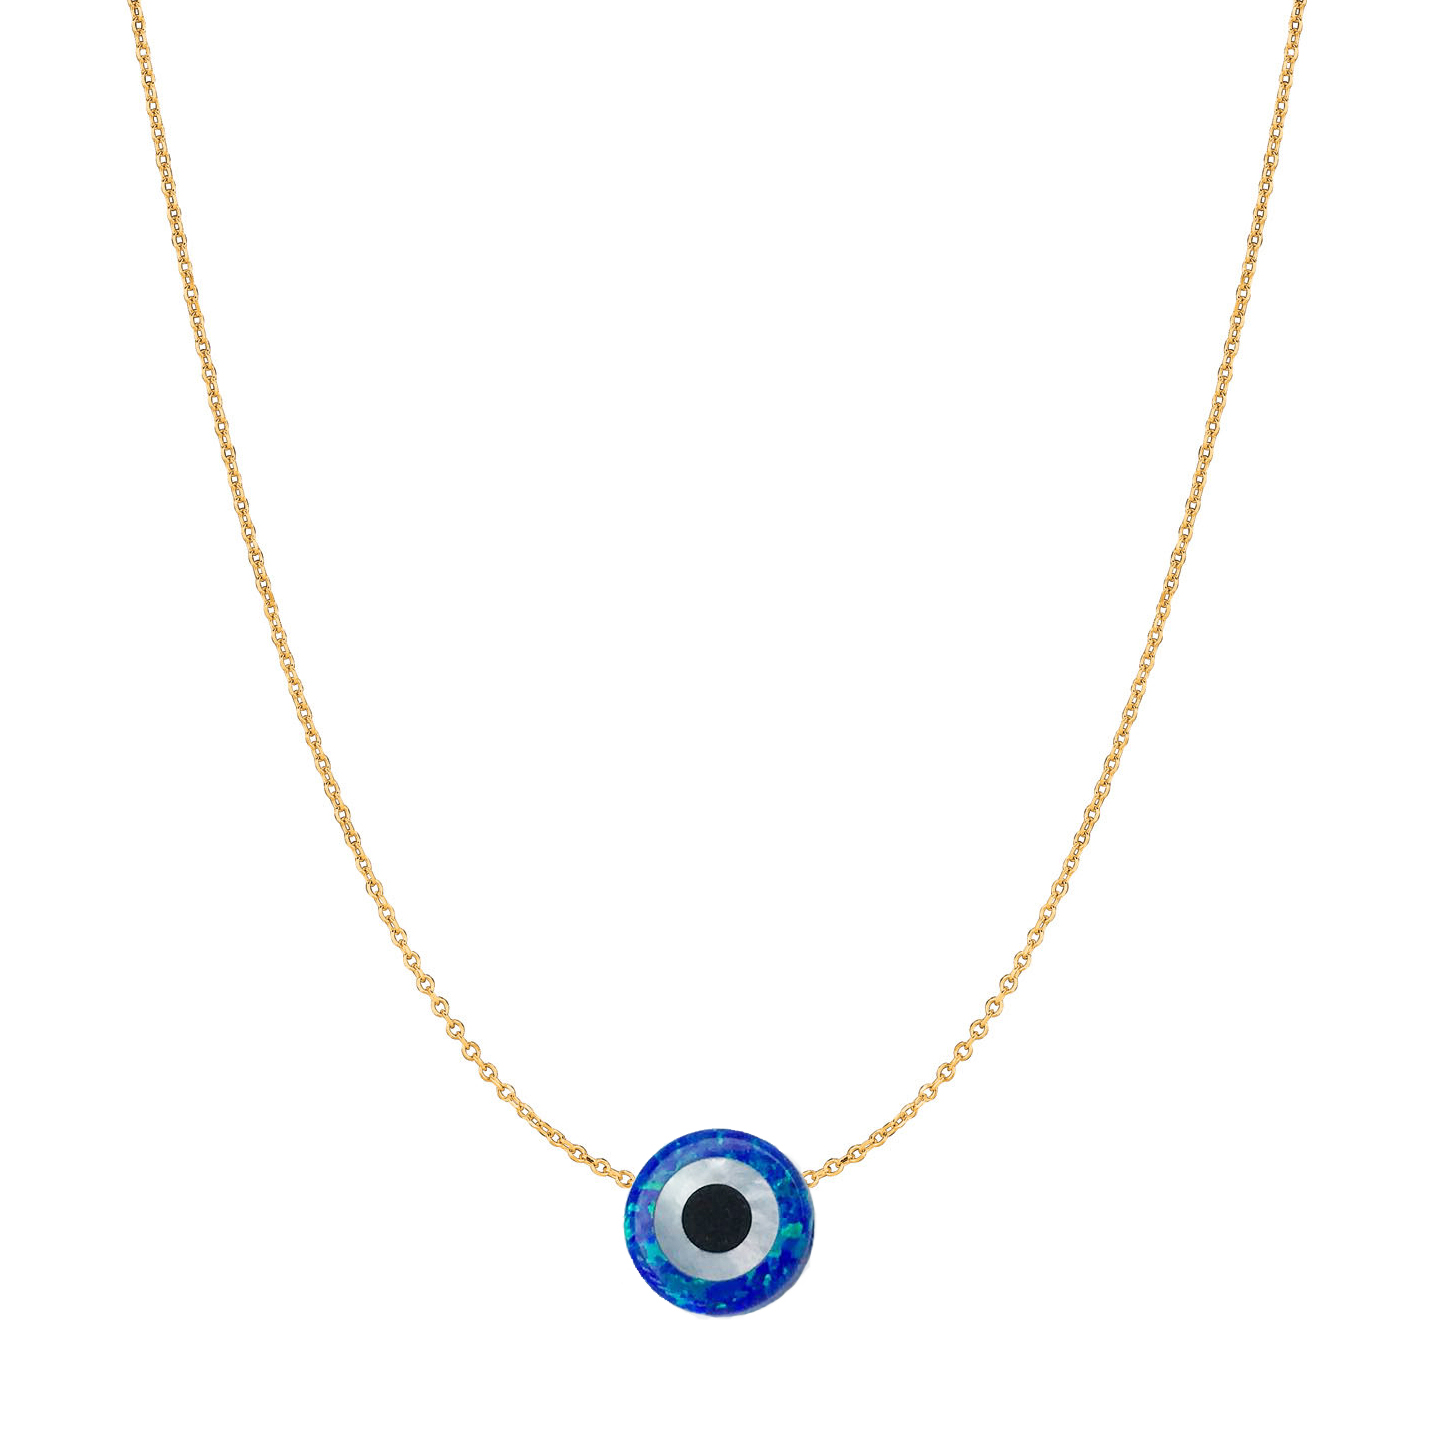 14 Karat Gold Royal Blue Opal Evil Eye Necklace